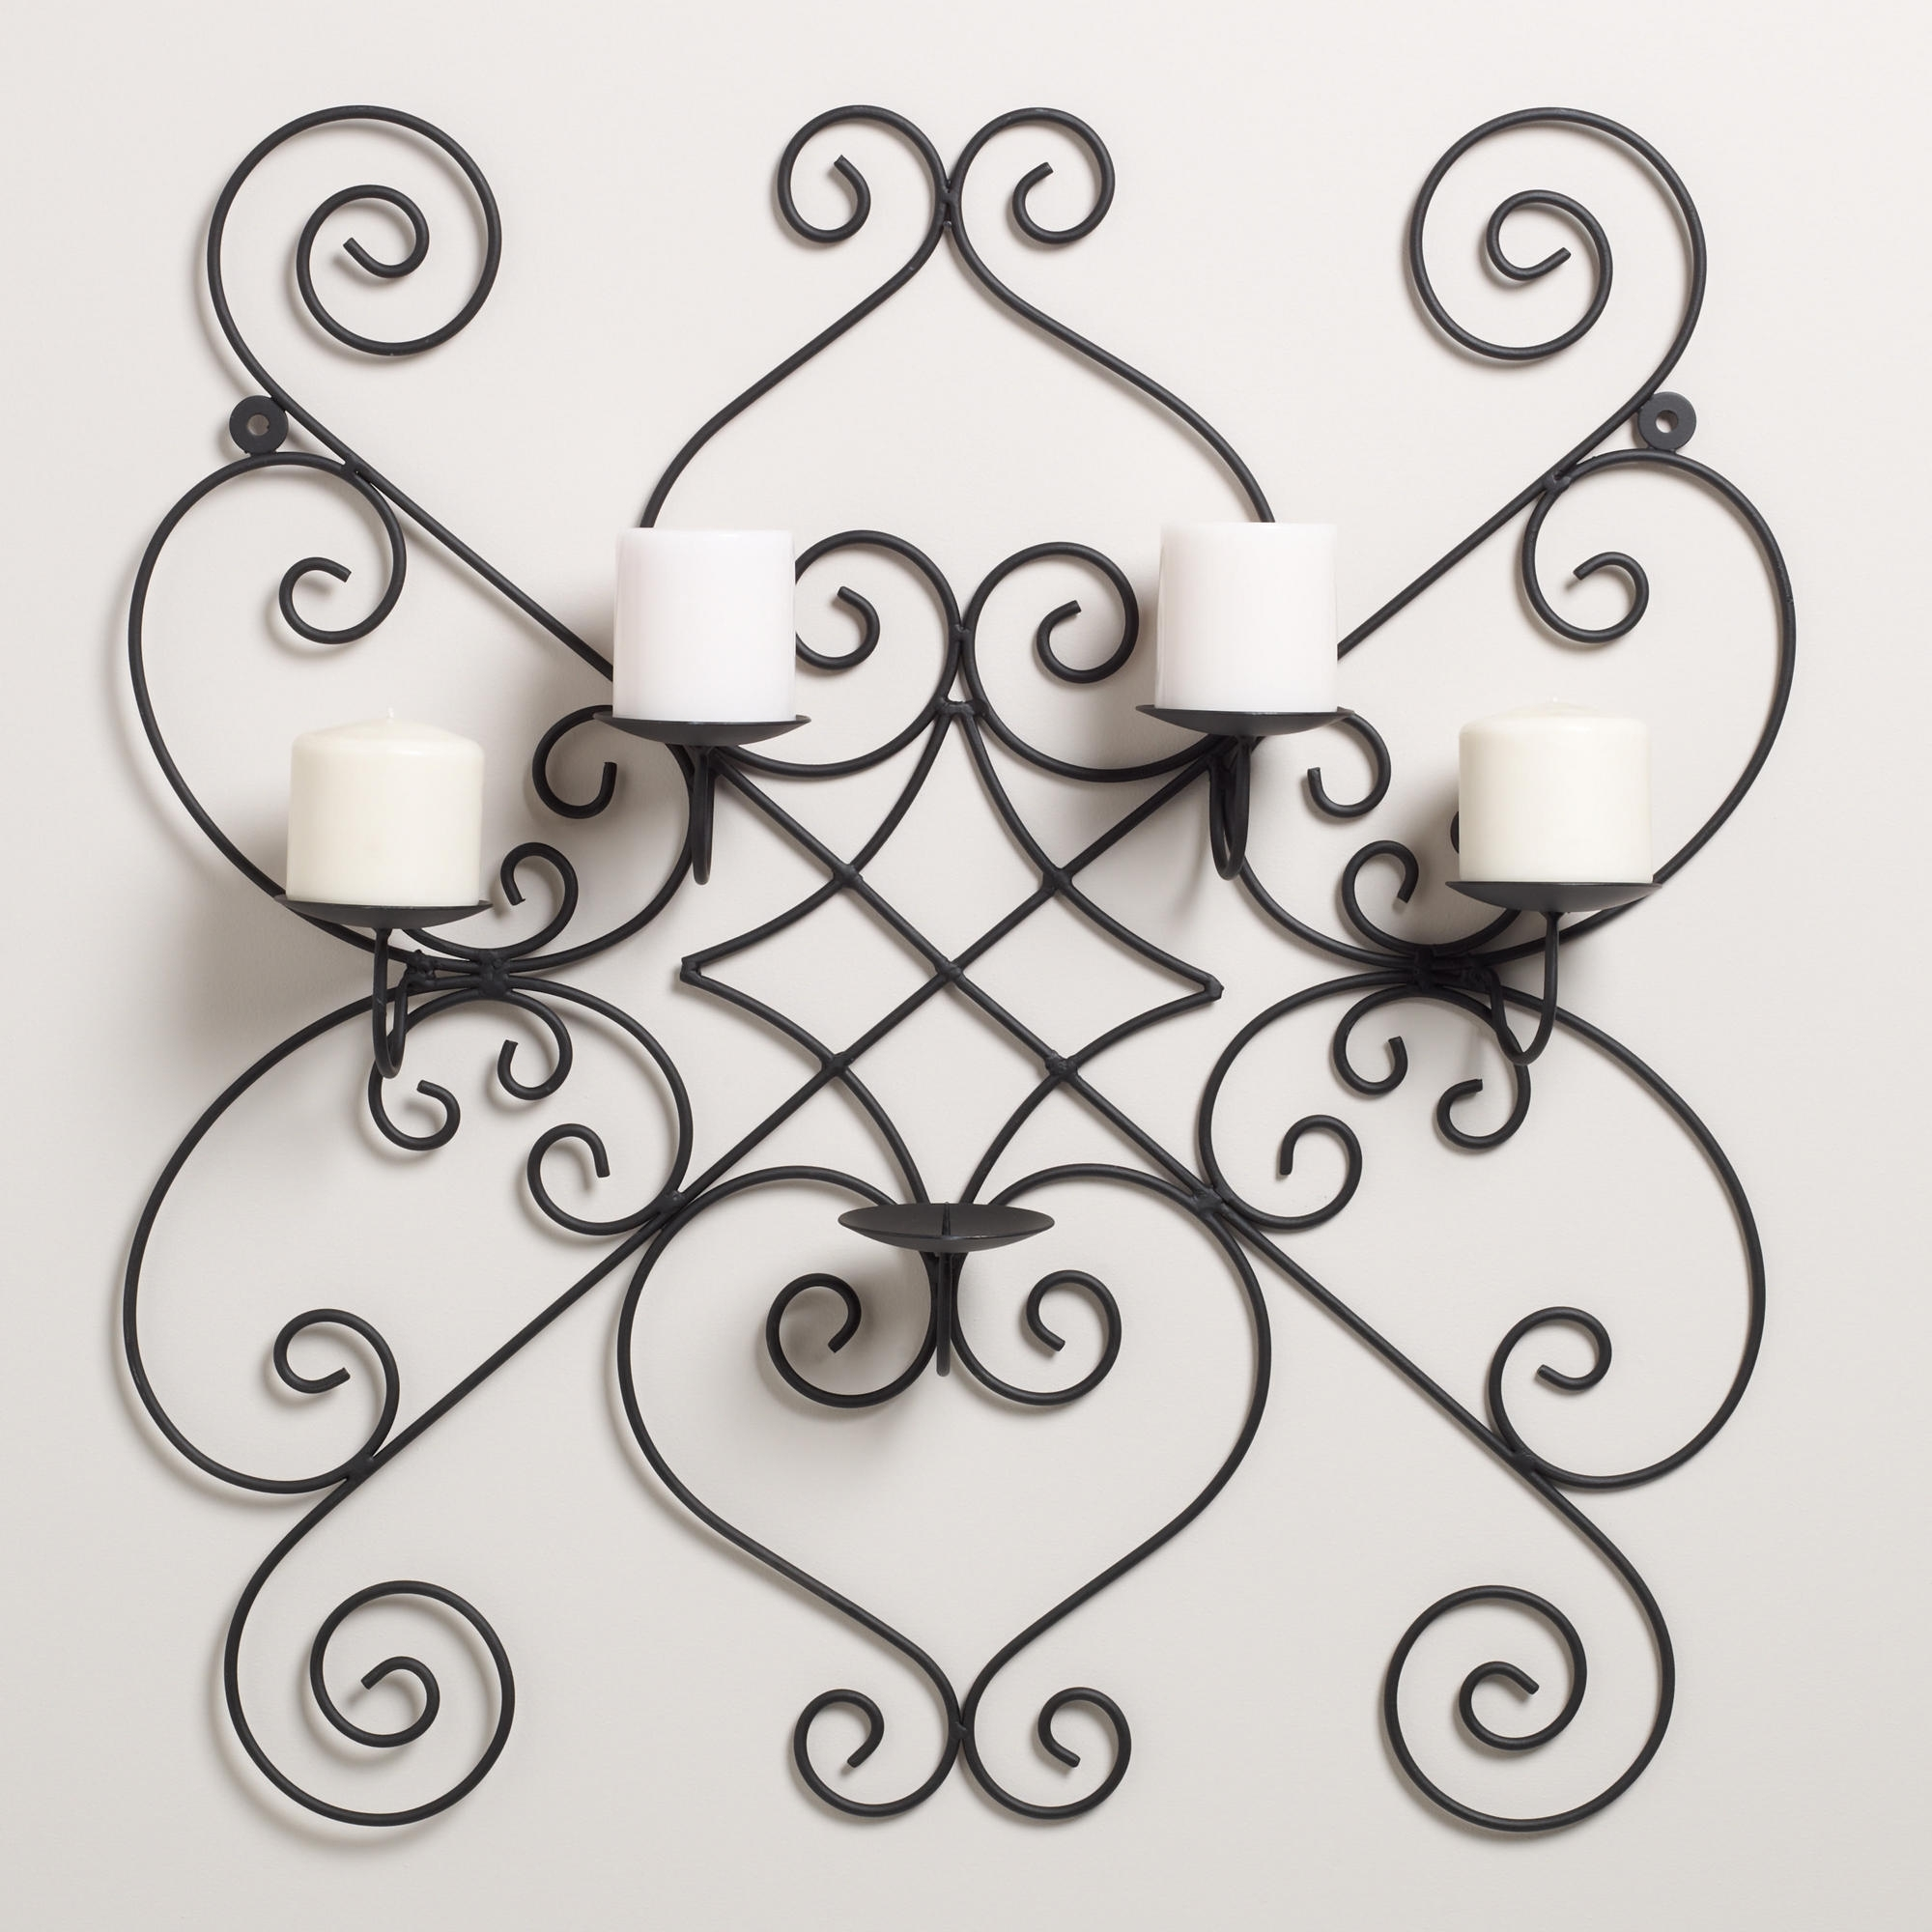 Benefit Of Wrought Iron Wall Decor — Charter Home Ideas Within Wrought Iron Wall Art (View 13 of 20)